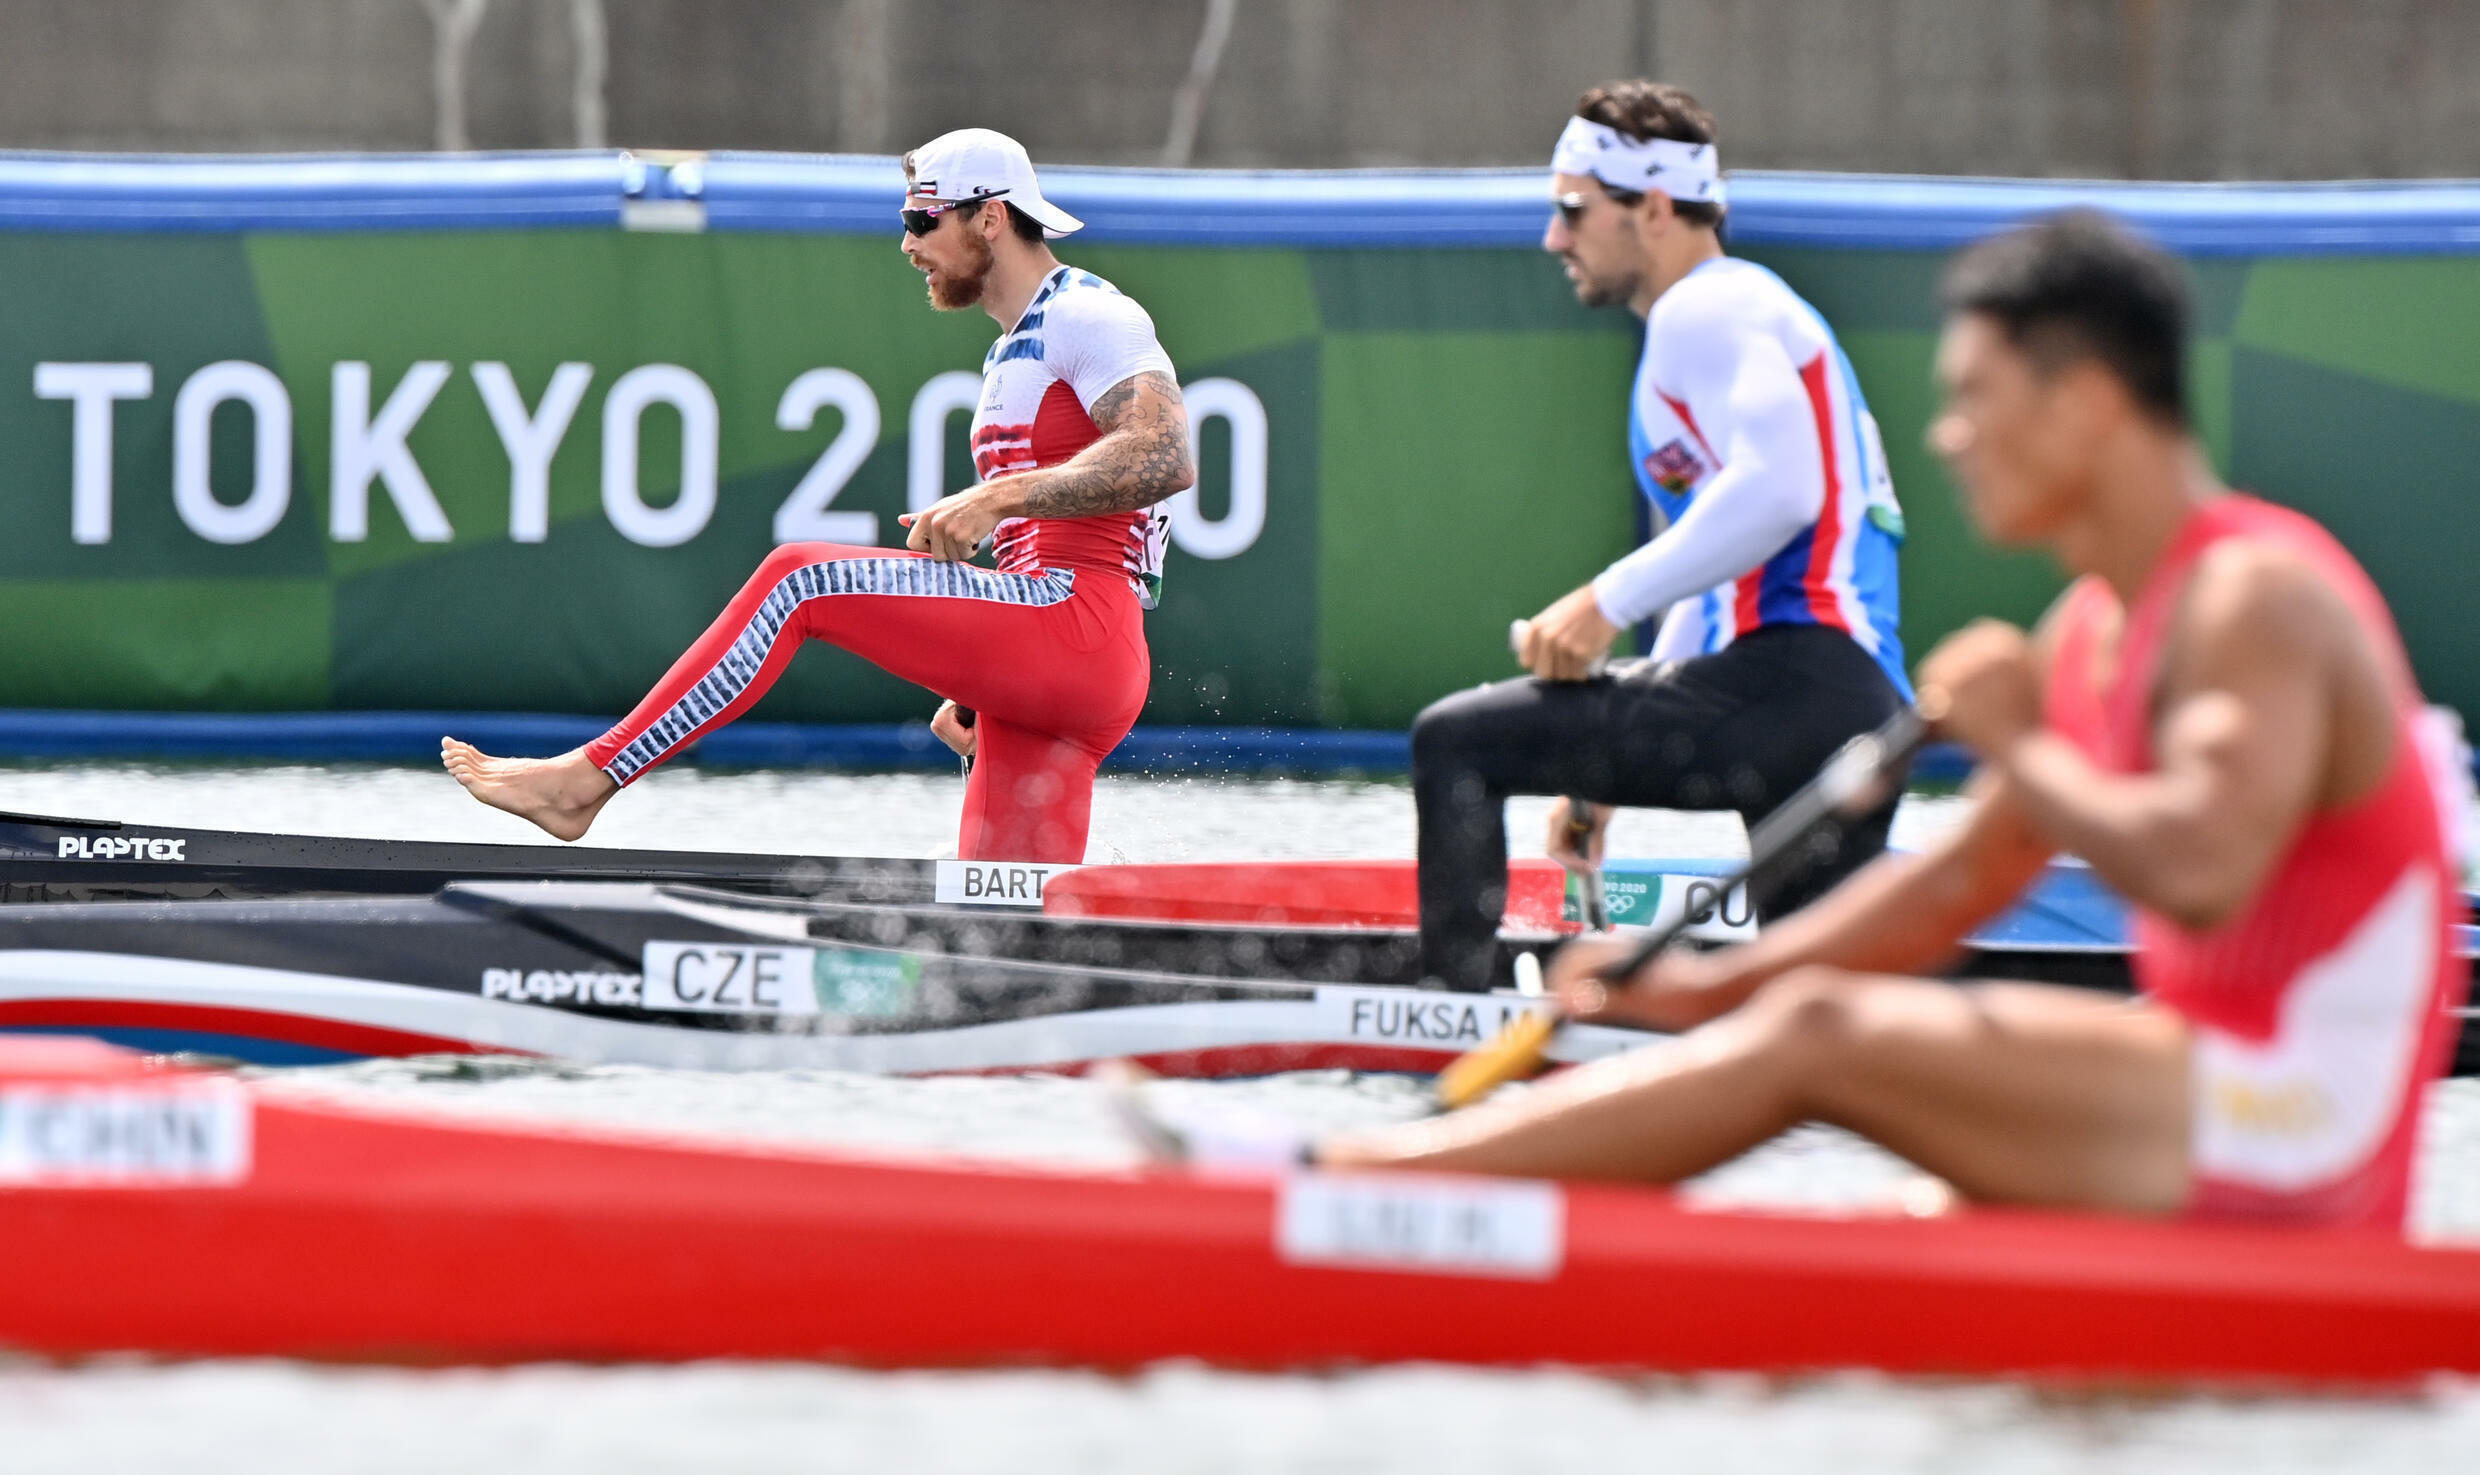 France's Adrien Bart at the end of the semi-final of the canoe line at the Tokyo Games, August 7, 2021